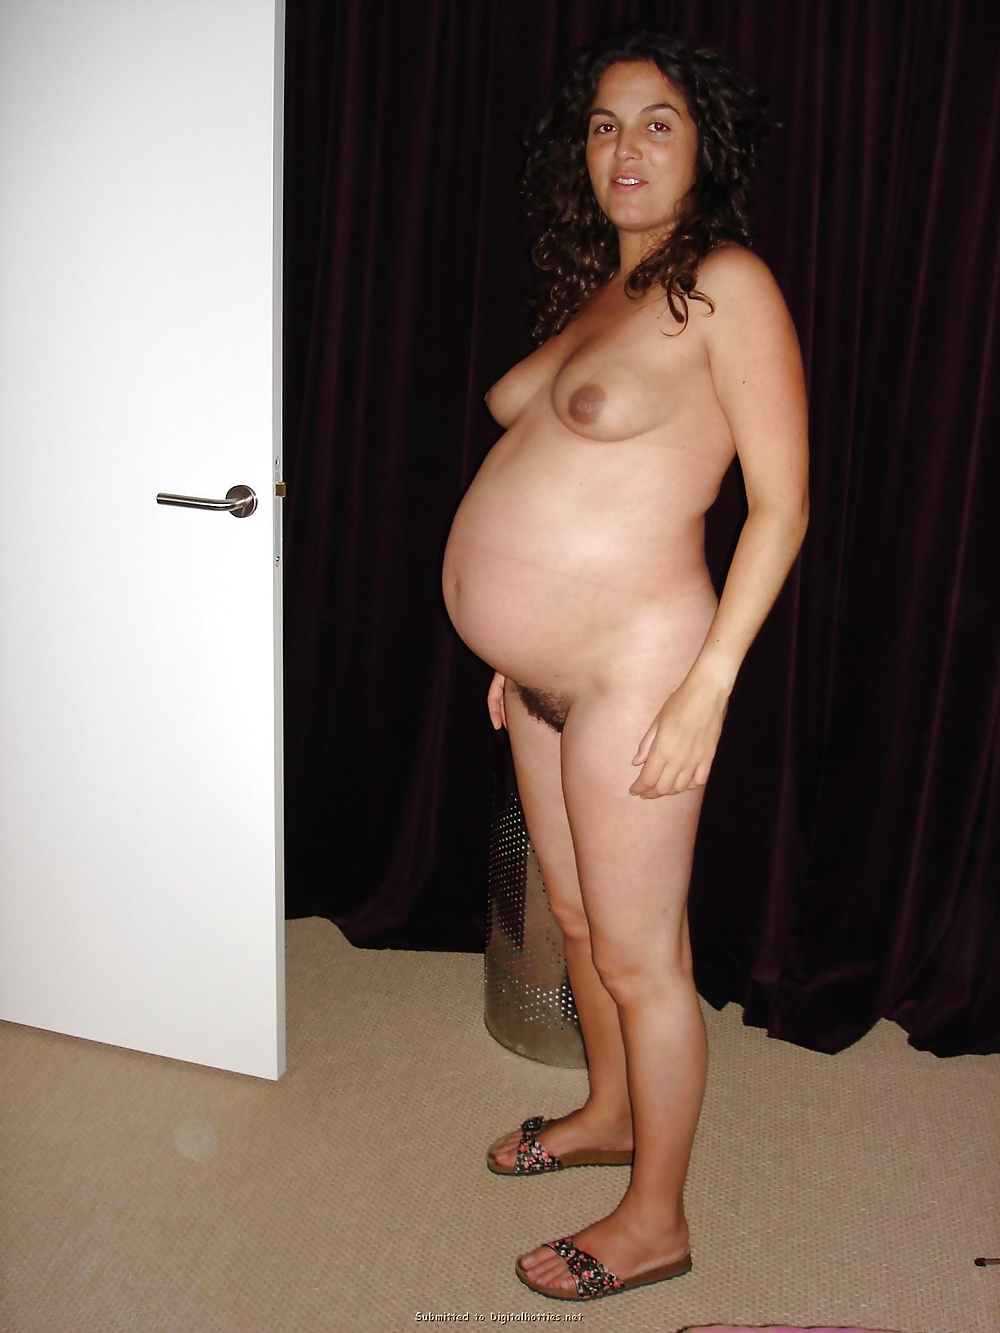 Naked Pregnant Woman With Her Husband Stock Image